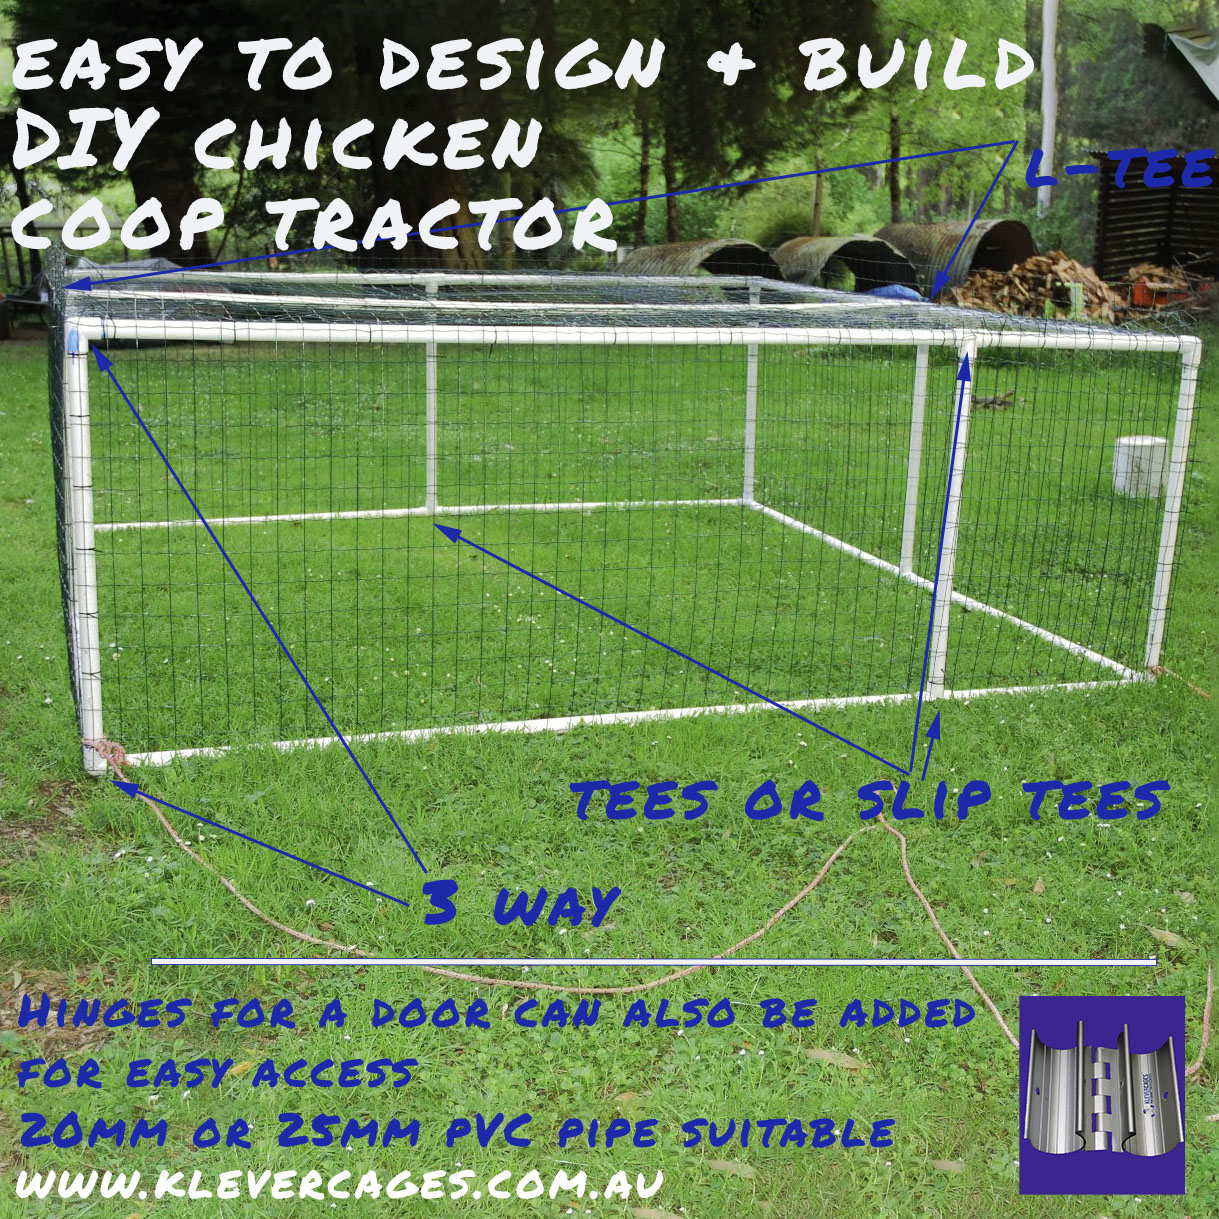 Easy to build mobile chciken coop built with PVC connectors and pipe for your backyard sitting on grass and a picture of a door hinge that can be added for easy access